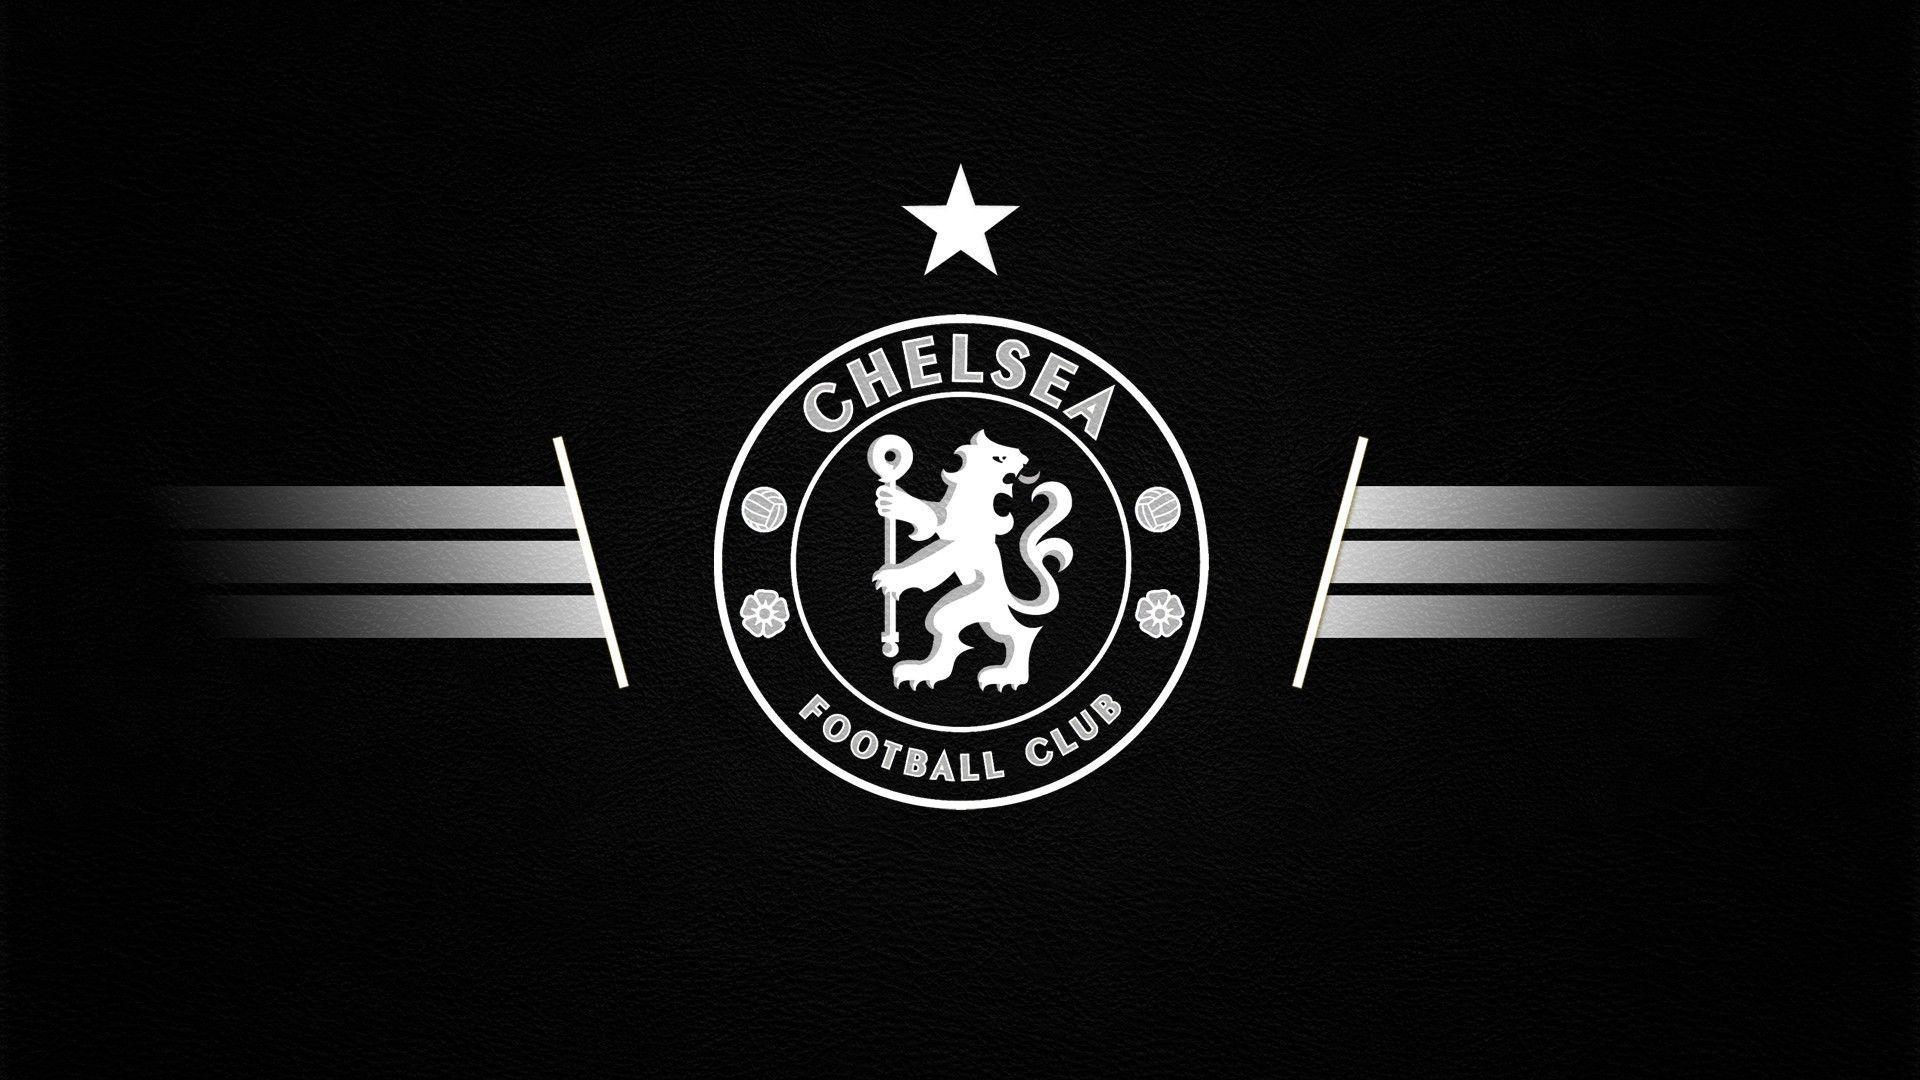 Chelsea FC, Soccer, Soccer Clubs, Premier League Wallpapers HD